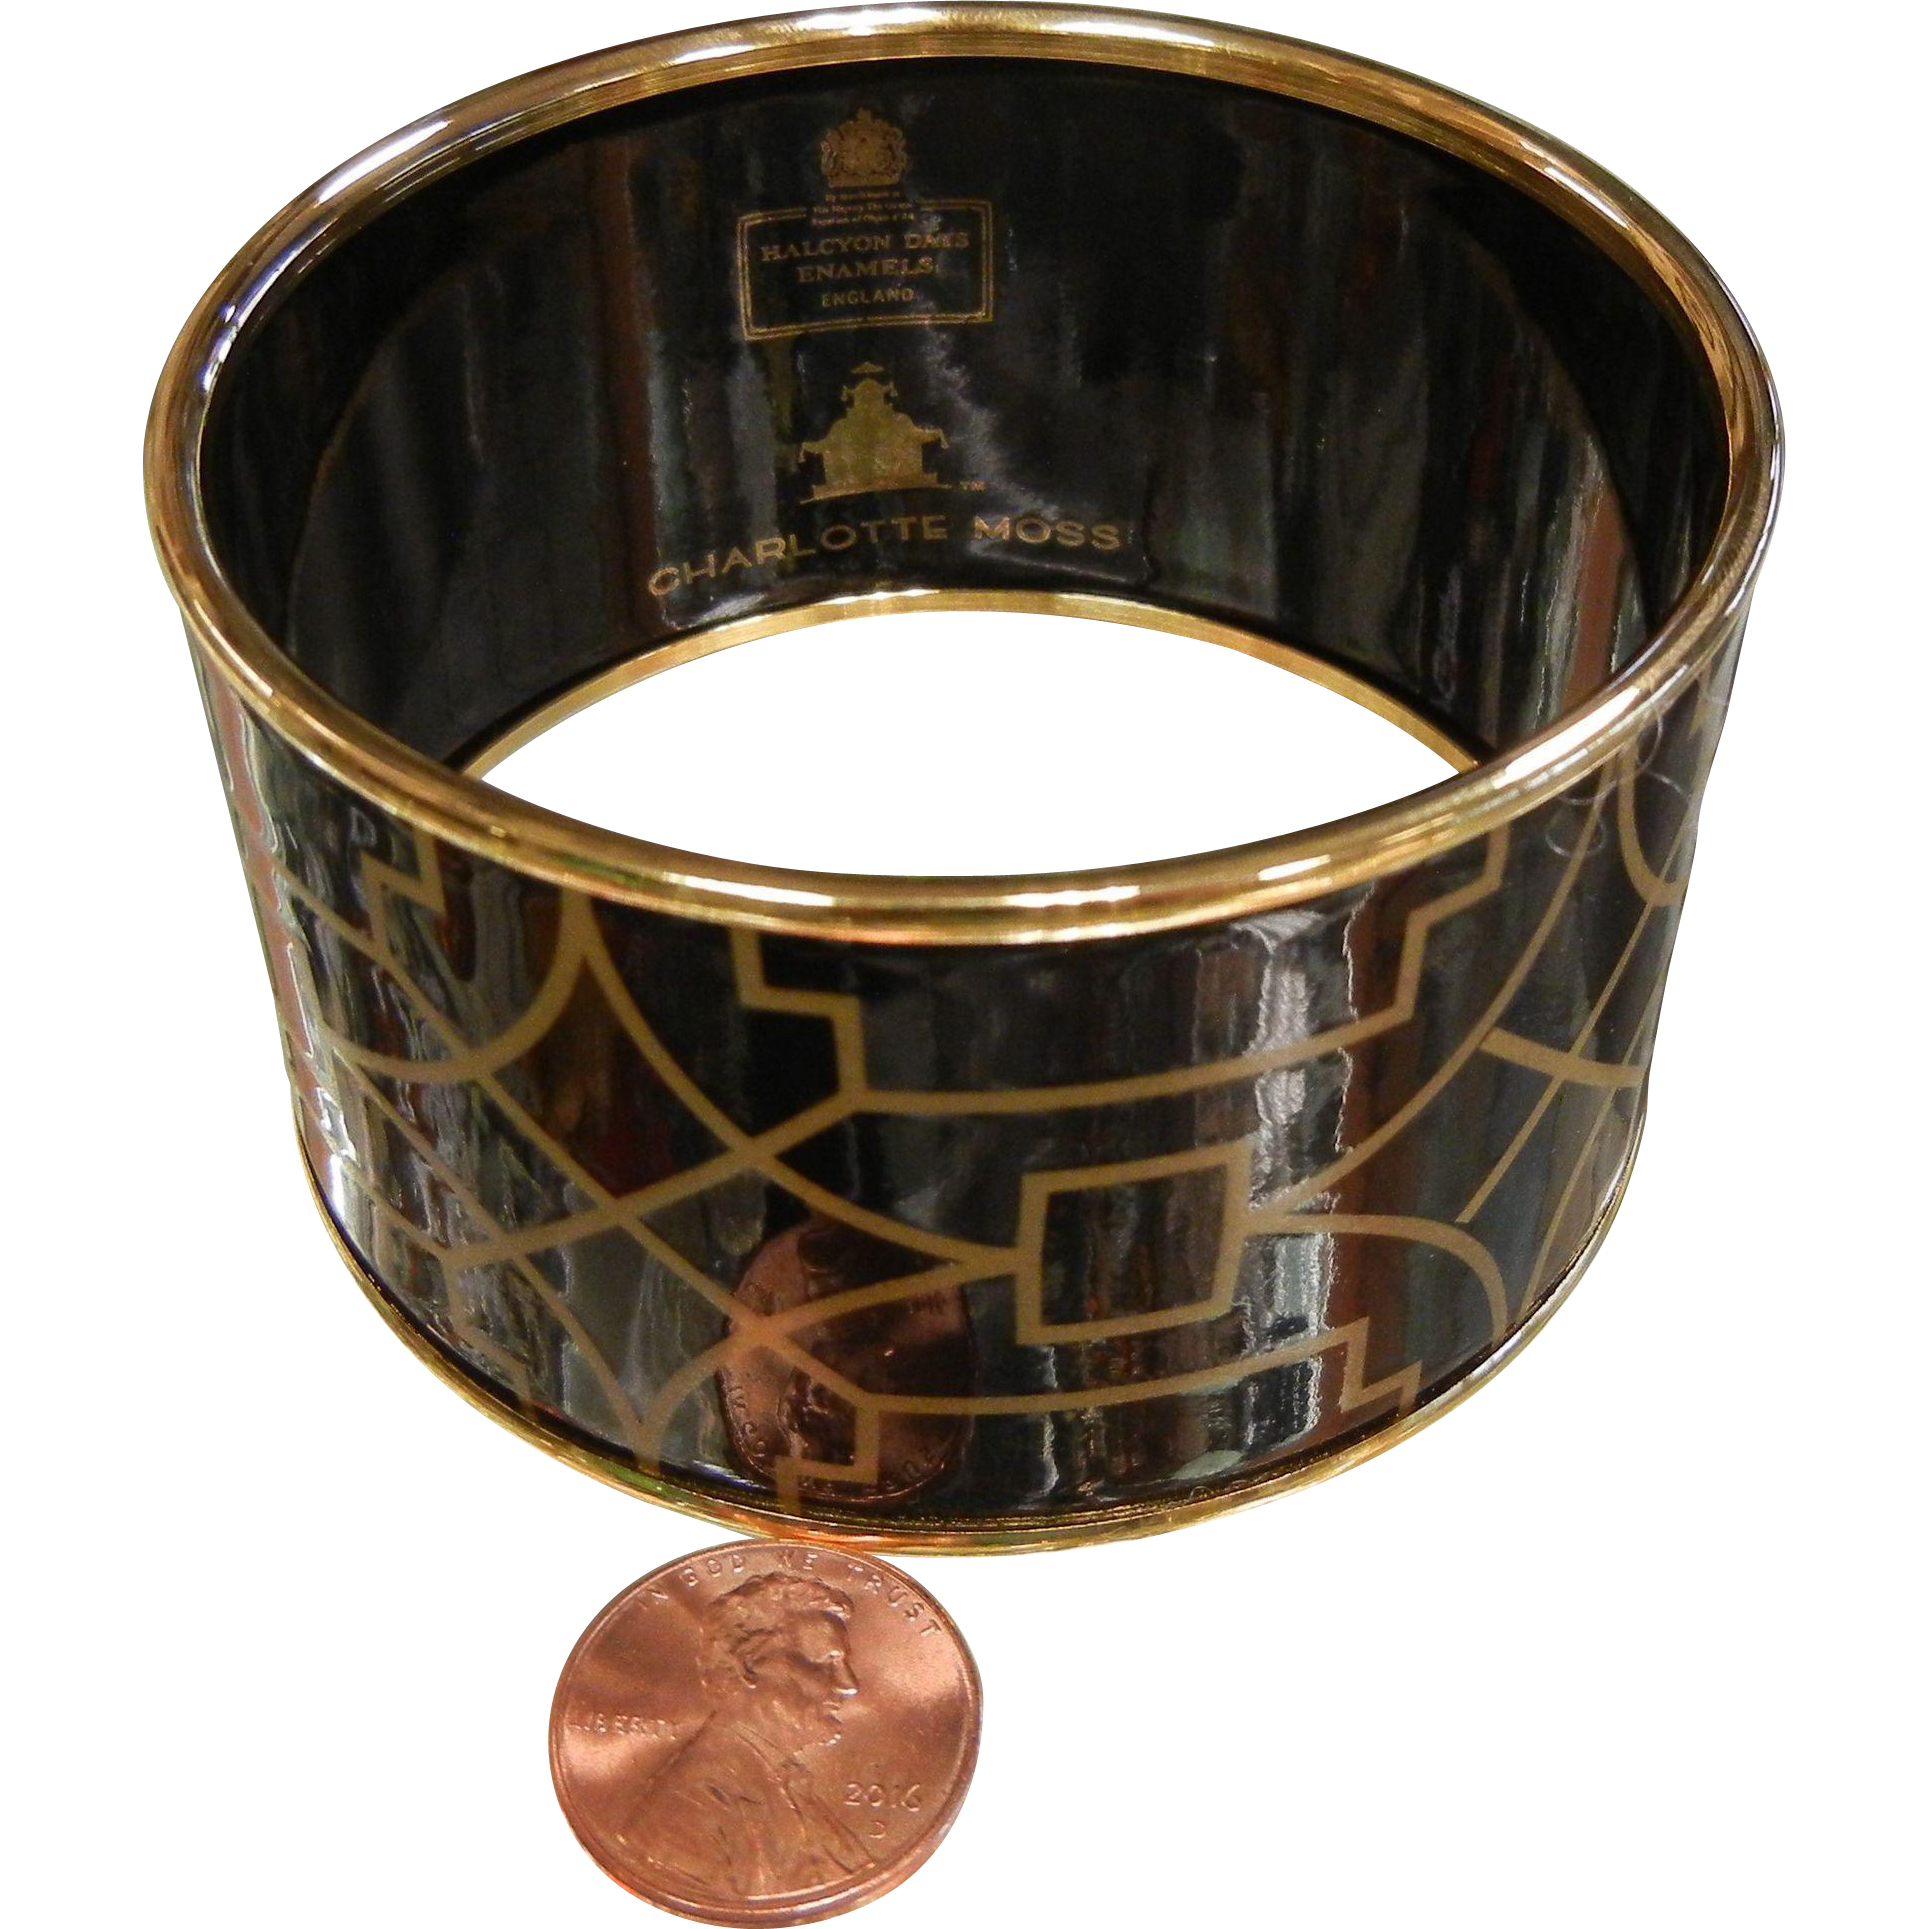 Wide Enameled Black & Gold-Tone Luxury Bangle Bracelet by Charlotte Moss Halcyon Days England